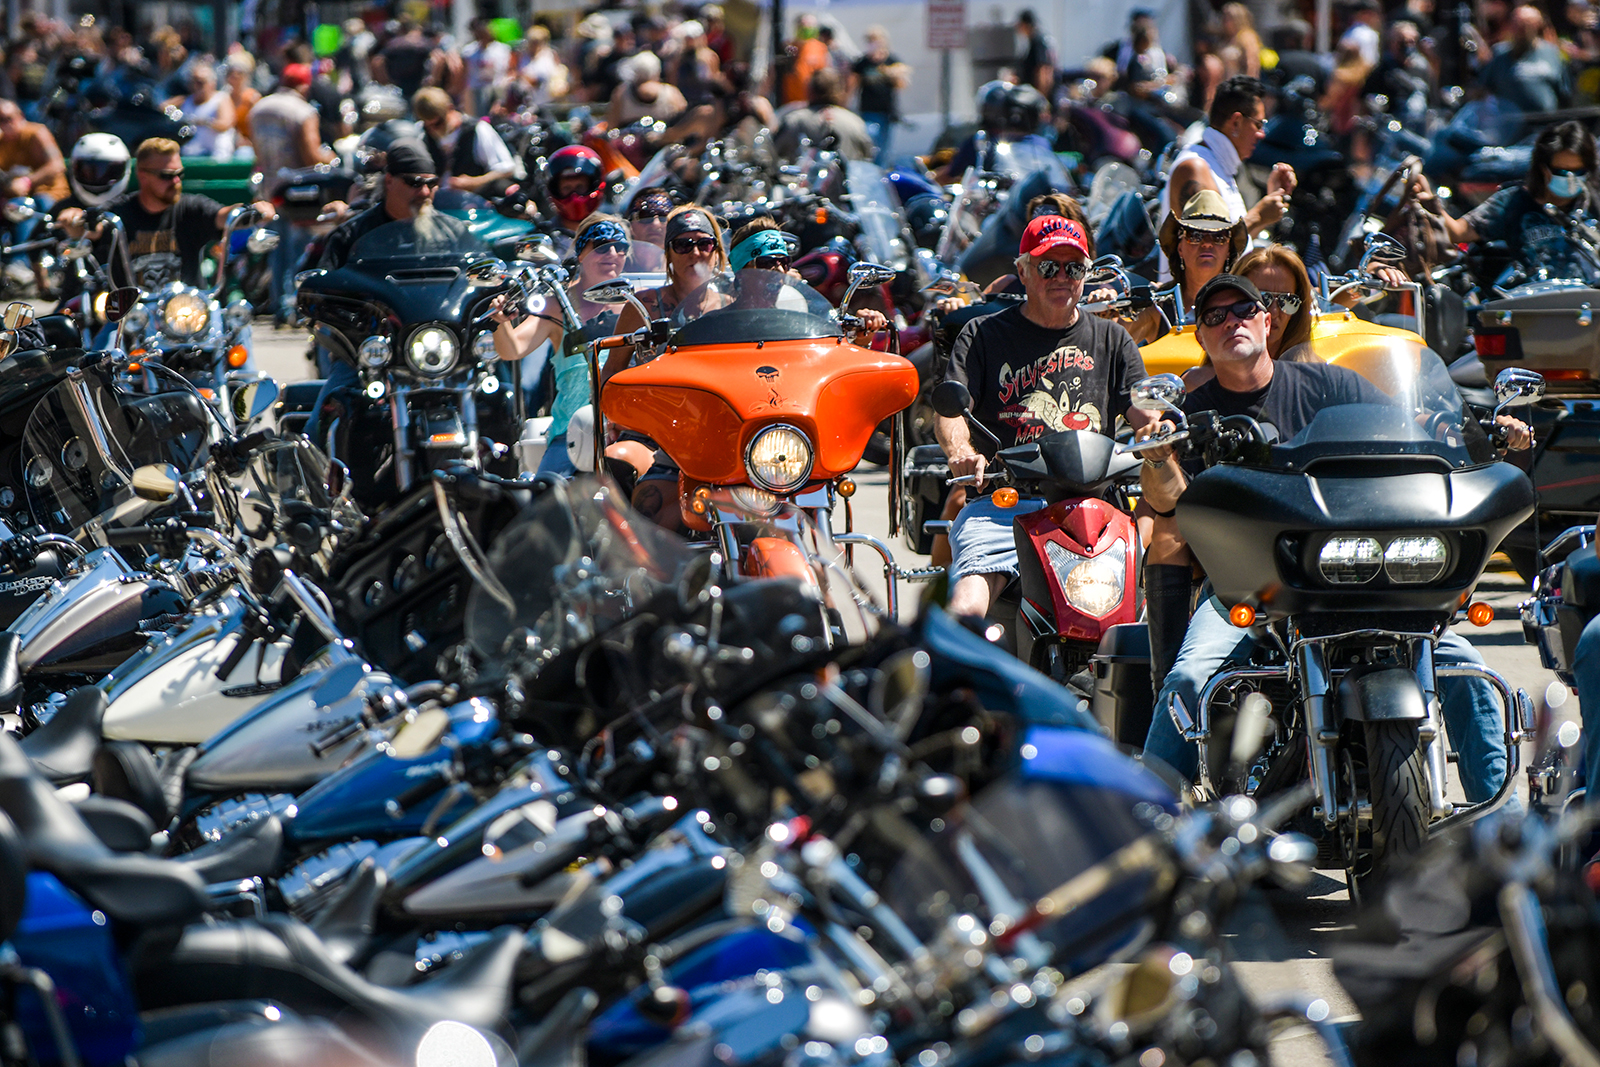 Motorcyclists ride on Main Street during the 80th annual Sturgis Motorcycle Rally in Sturgis, South Dakota on August 7.